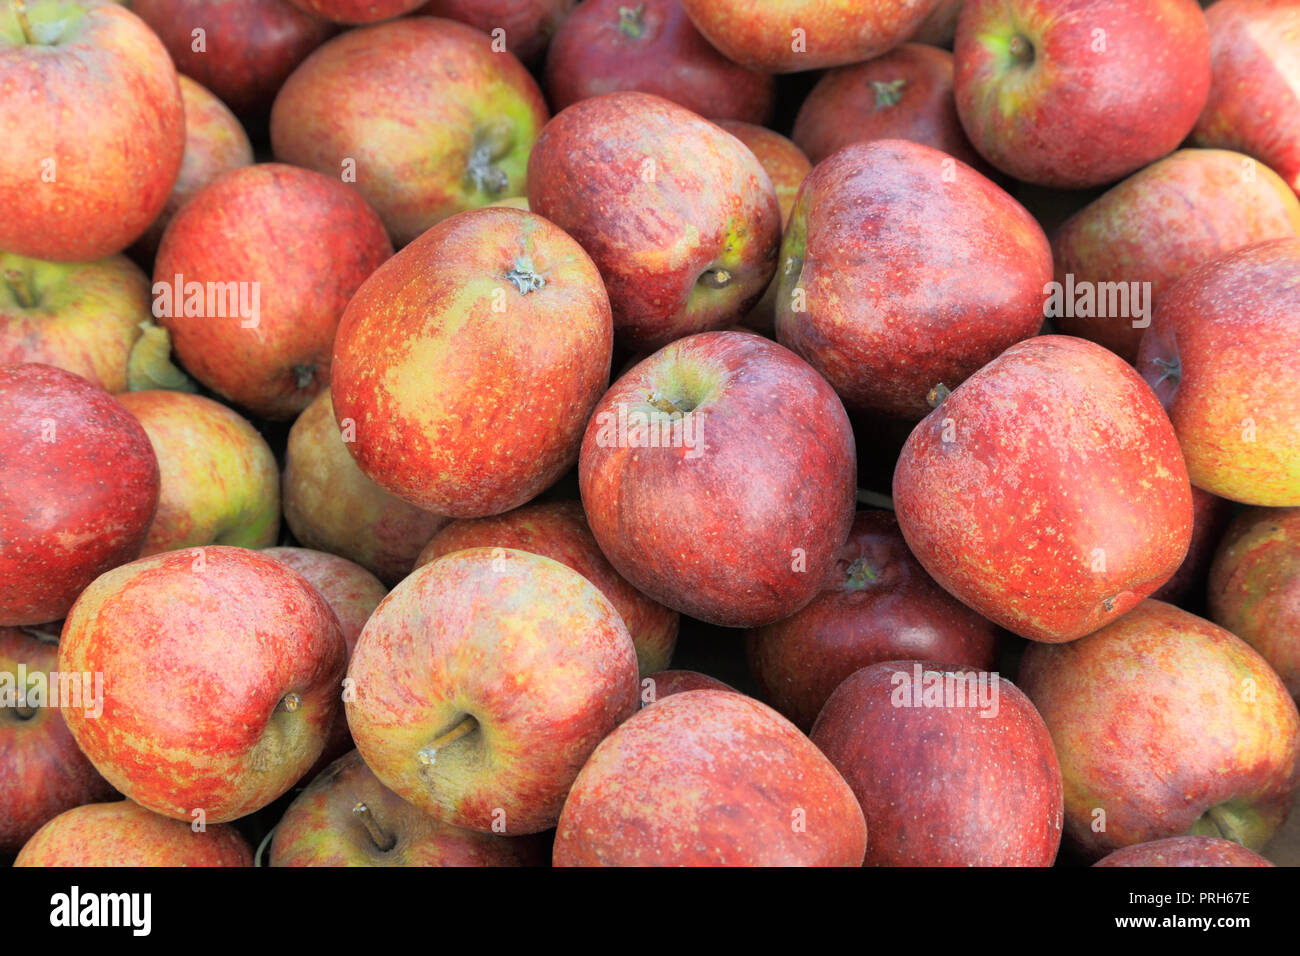 Apple 'River St. Martin', apples, malus domestica, farm shop, display, edible, fruit - Stock Image